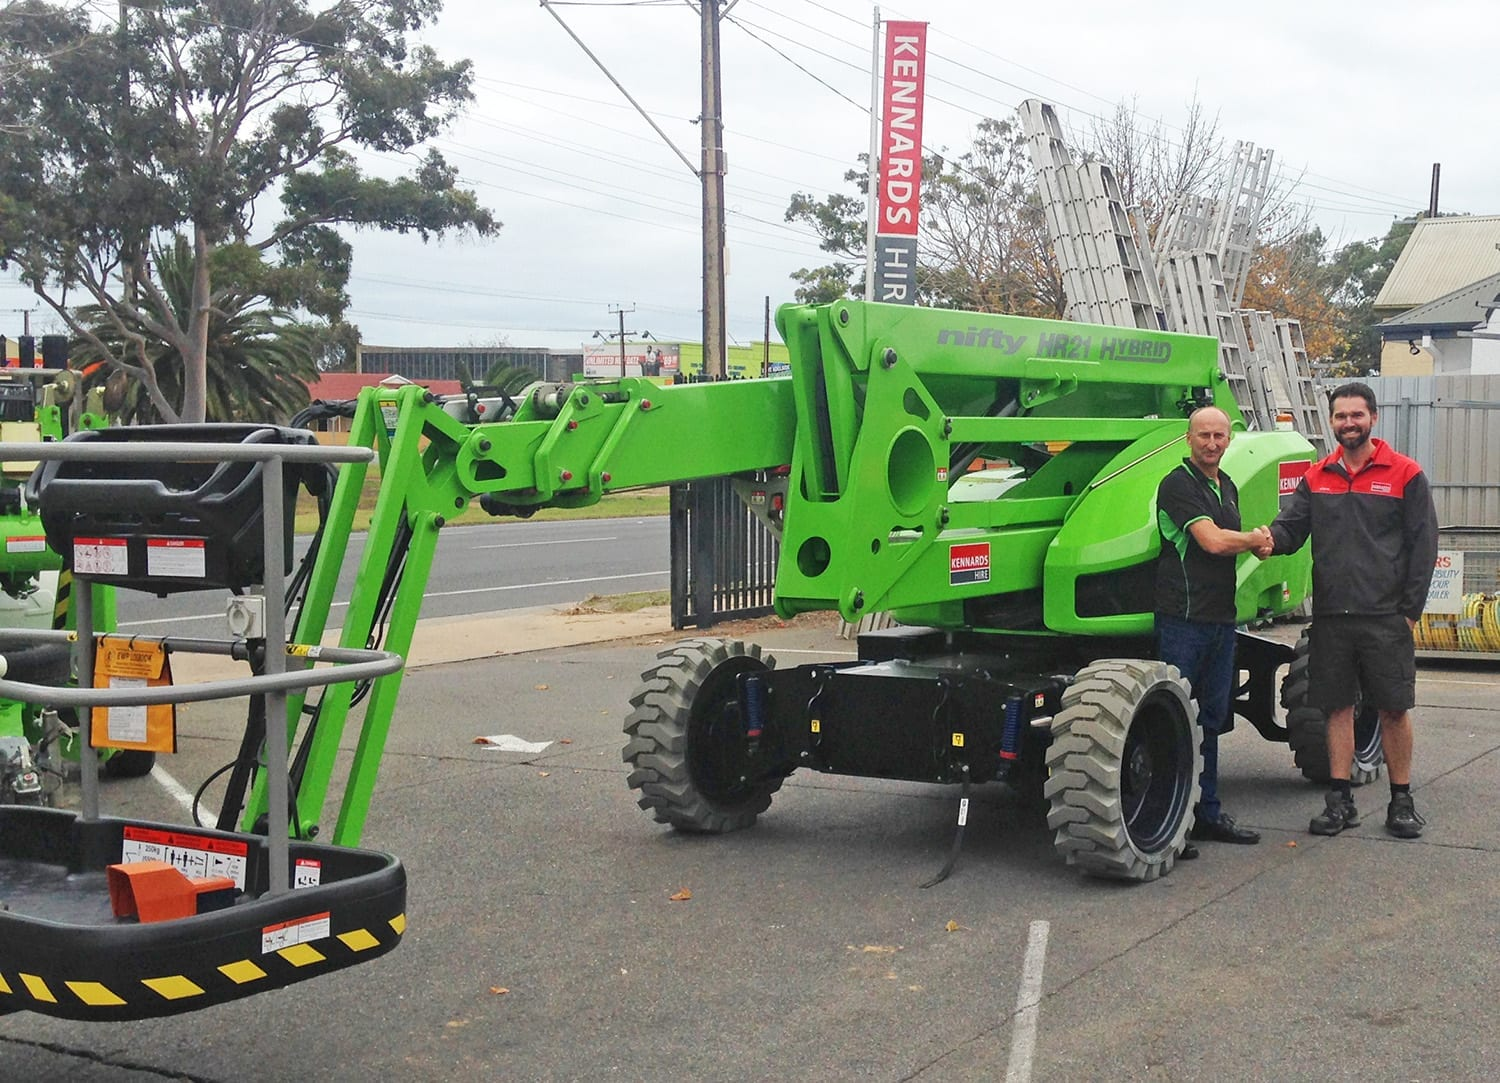 Kennards receive their first HR21 Hybrid 4x4